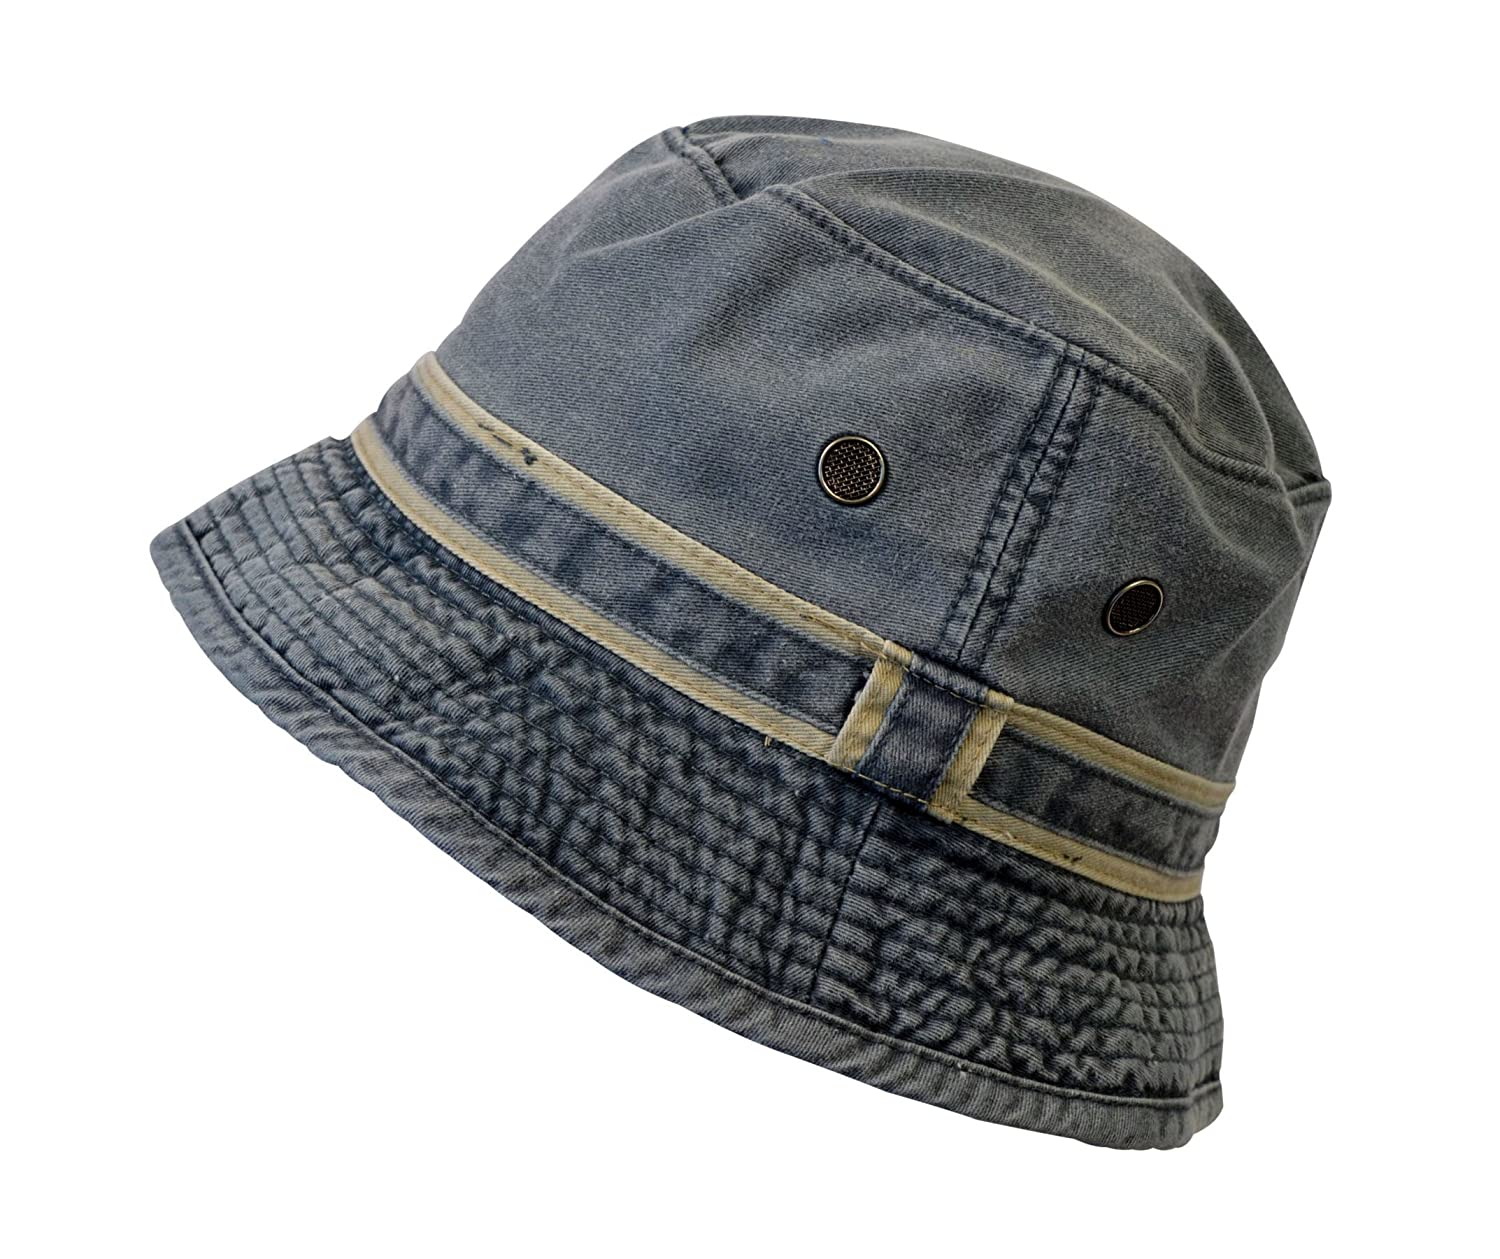 Amazon.com   Washed Cotton Denim Bucket Hat for Fishing Boating Gardening  Beach Cap   Sports   Outdoors 21e58c95a2e